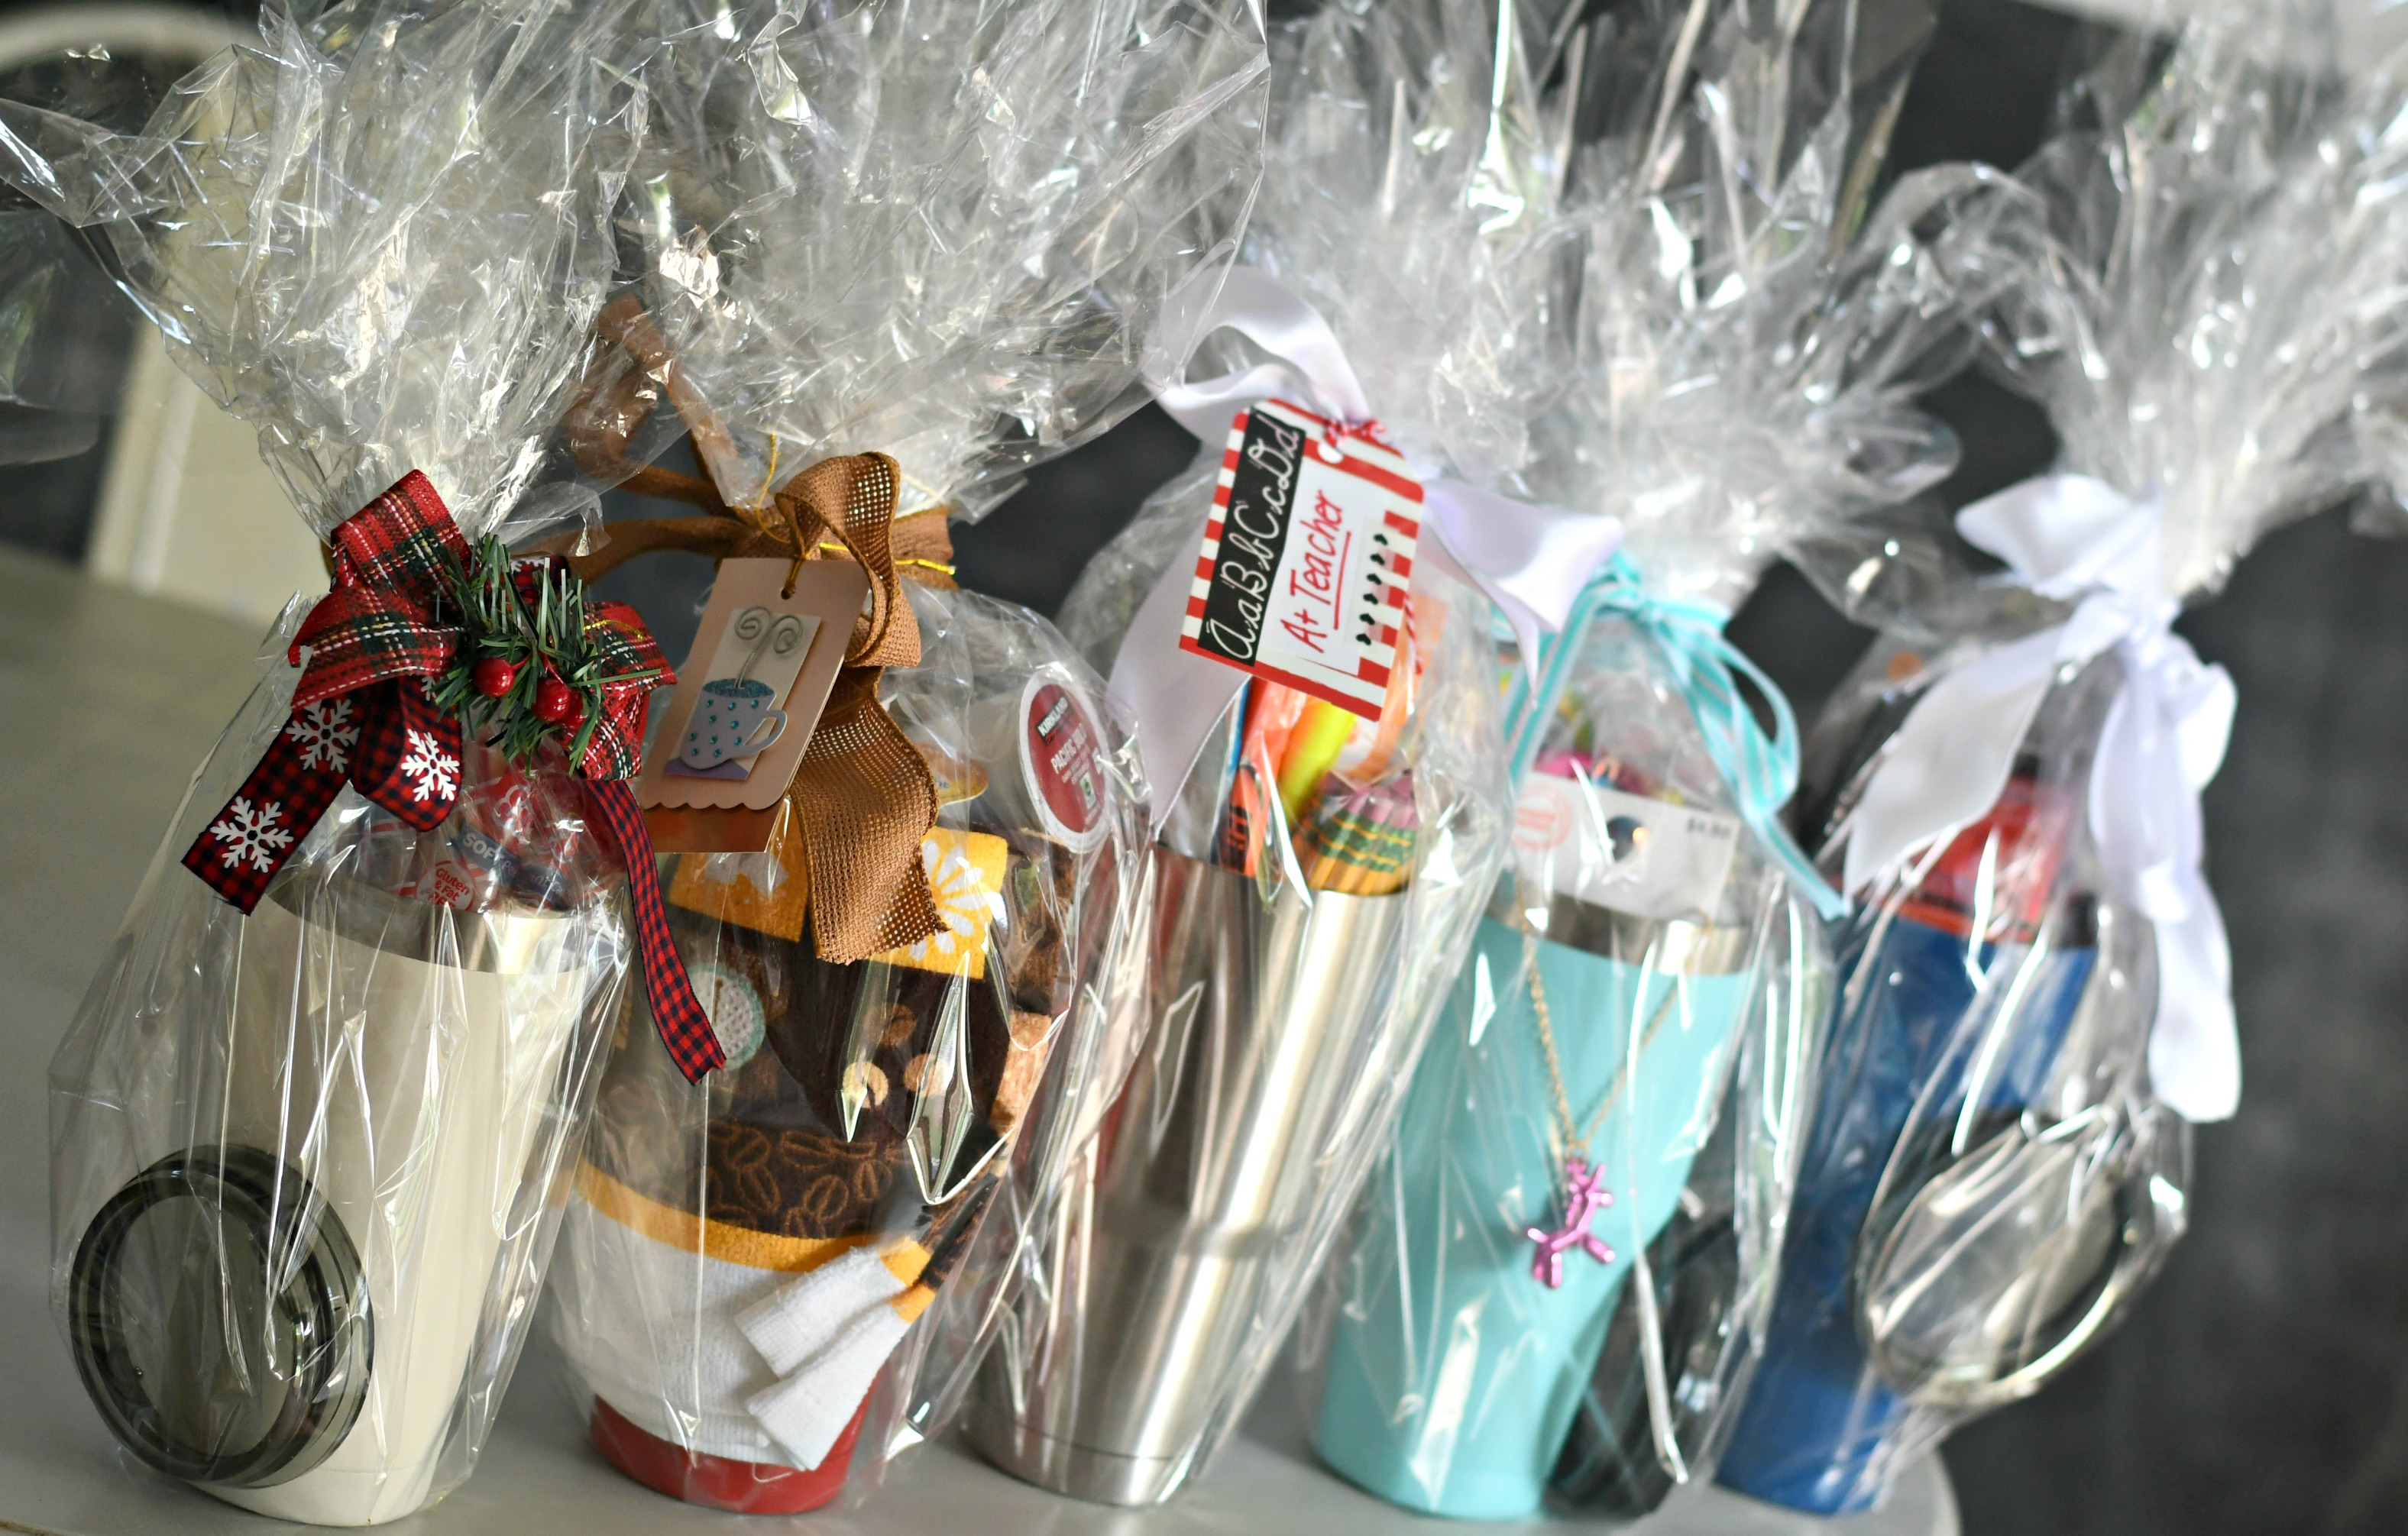 DIY Tumbler Gift basket ideas – tumblers wrapped in cellophane with cards and ribbon